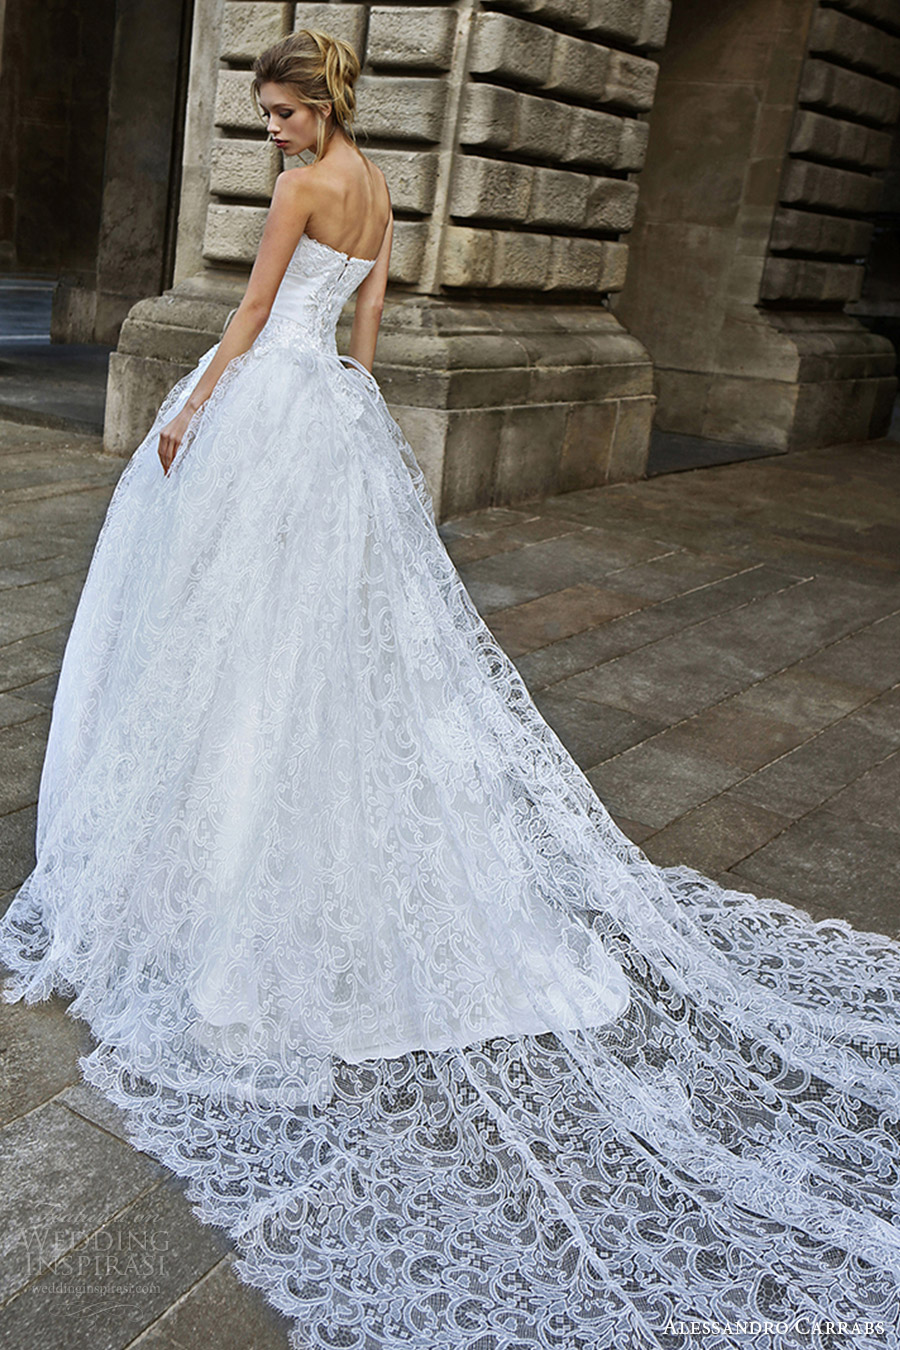 alessandro carrabs couture bridal 2016 strapless sweetheart ball gown lace wedding dress (018) bv romantic long train